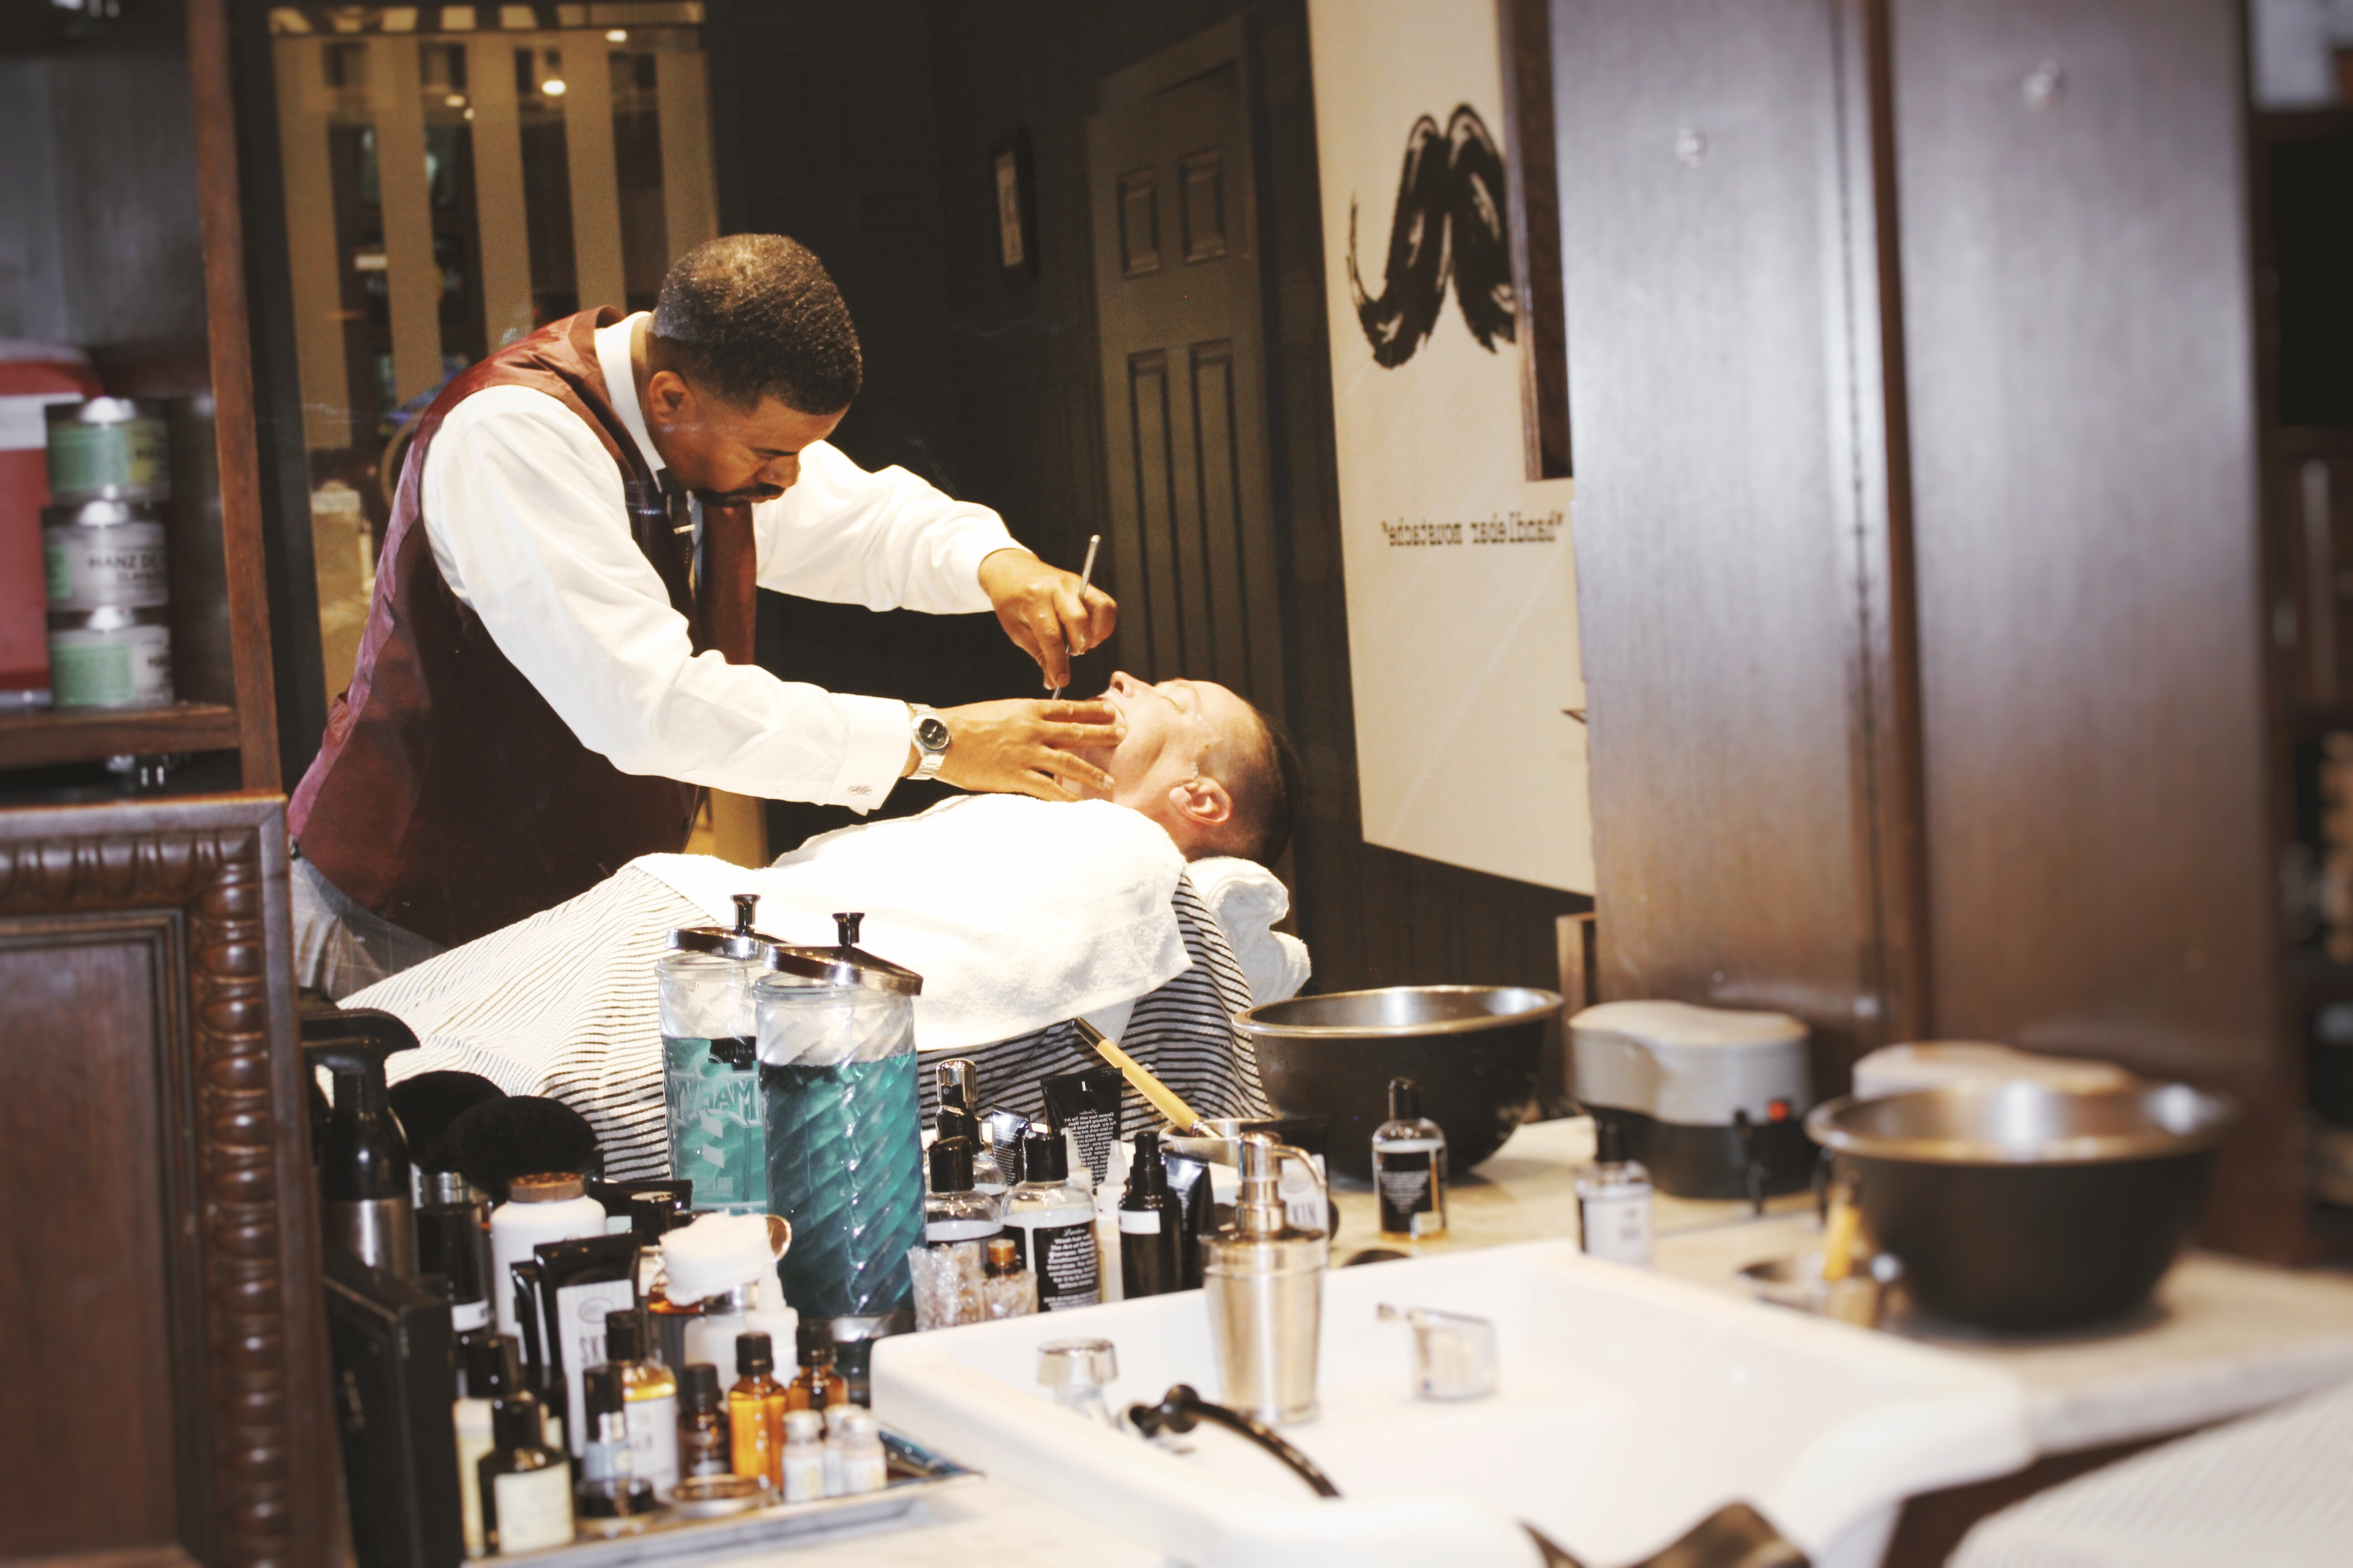 Manly Gifting The Art of Shaving